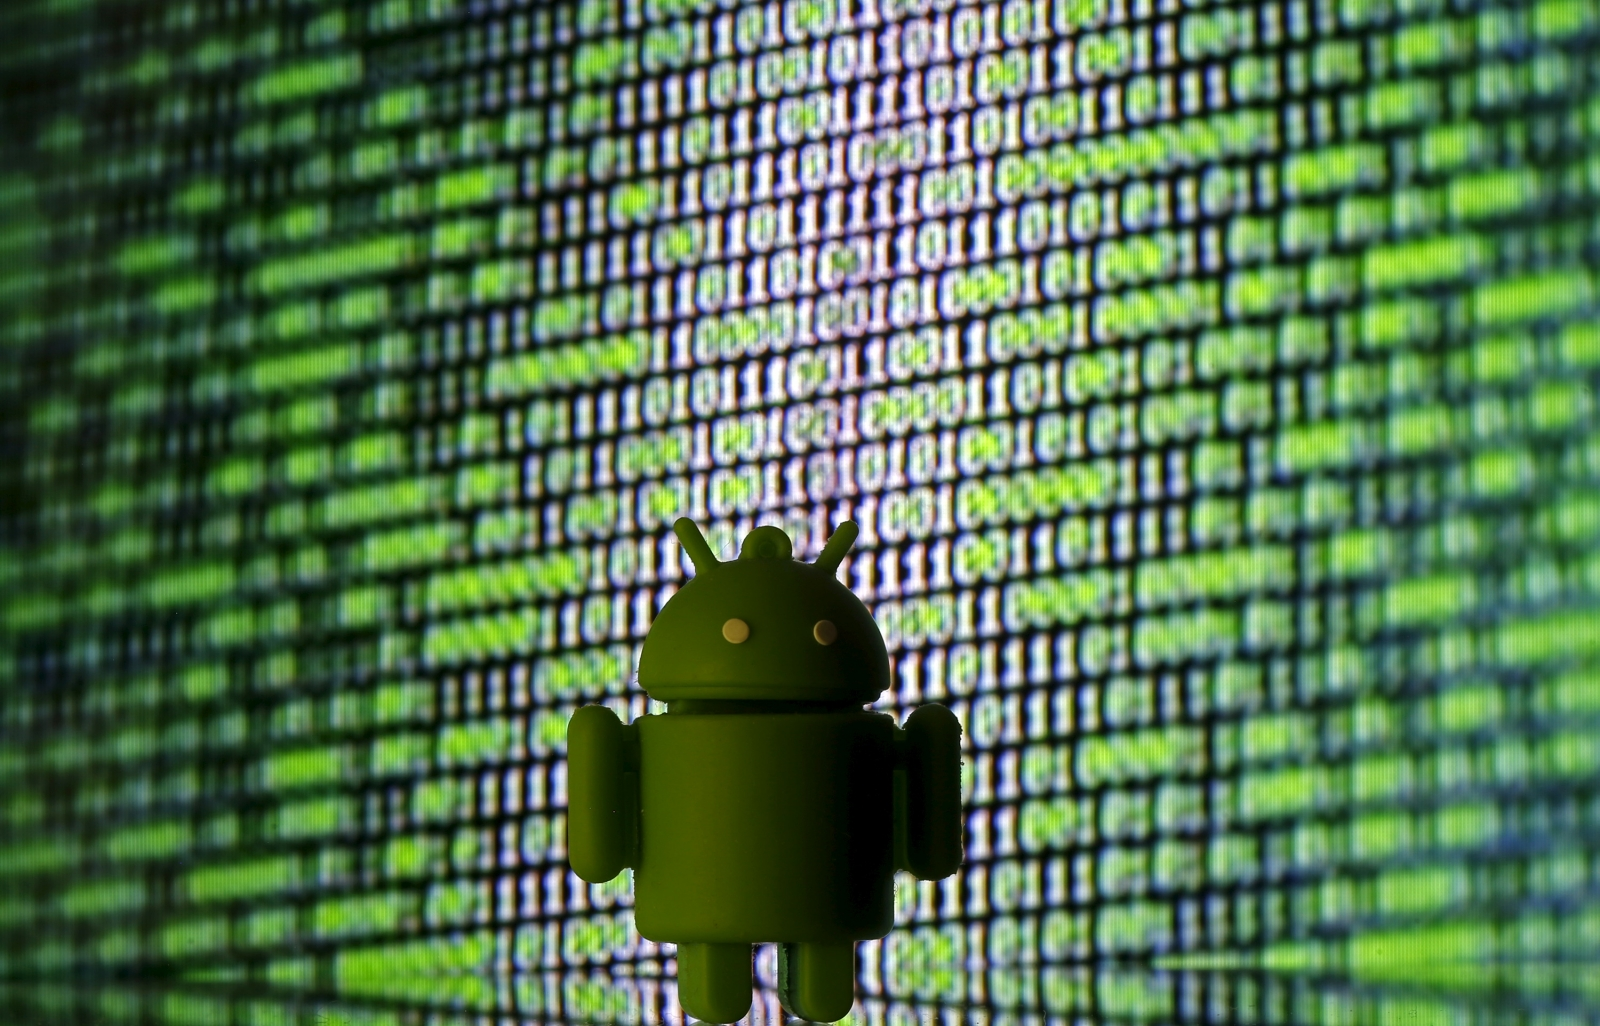 Godless Android malware affects Android Lollipop devices